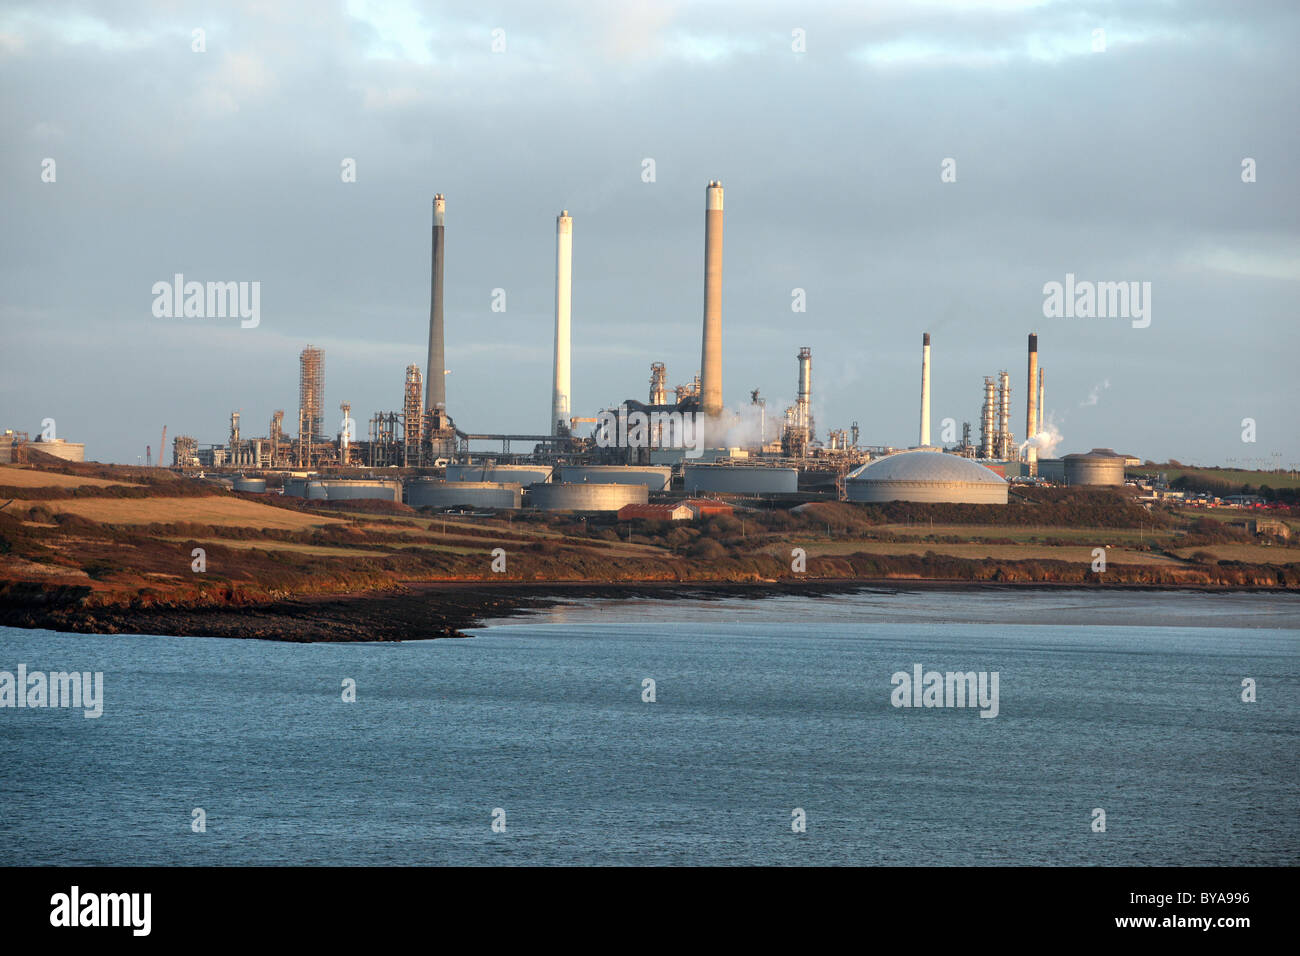 Chimneys of the Chevron refinery near Rhoscrowther as seen from Angle, Pembrokeshire - Stock Image